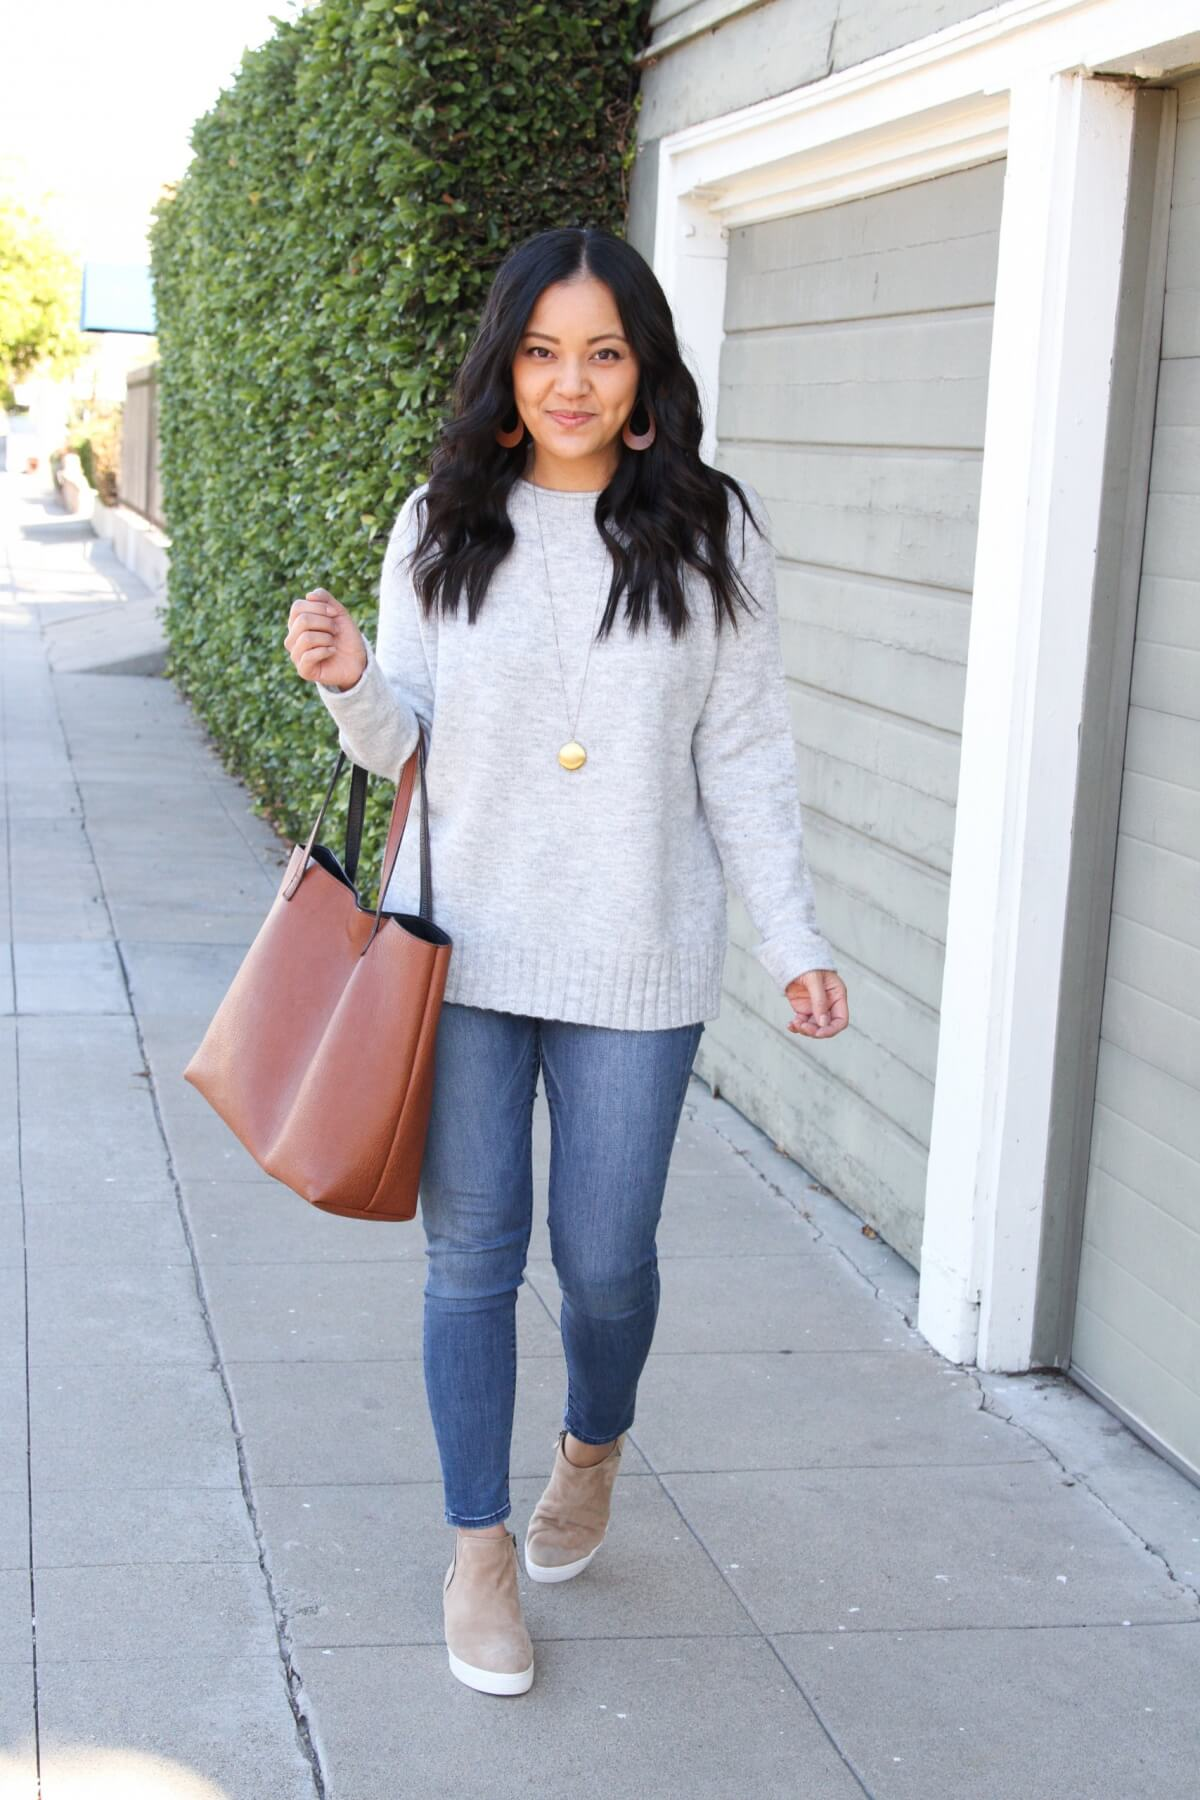 Fall Sweater Outfit: grey crewneck sweater + skinny jeans + taupe suede wedge sneakers + cognac tote + gold circle pendant necklace + tan leather earrings